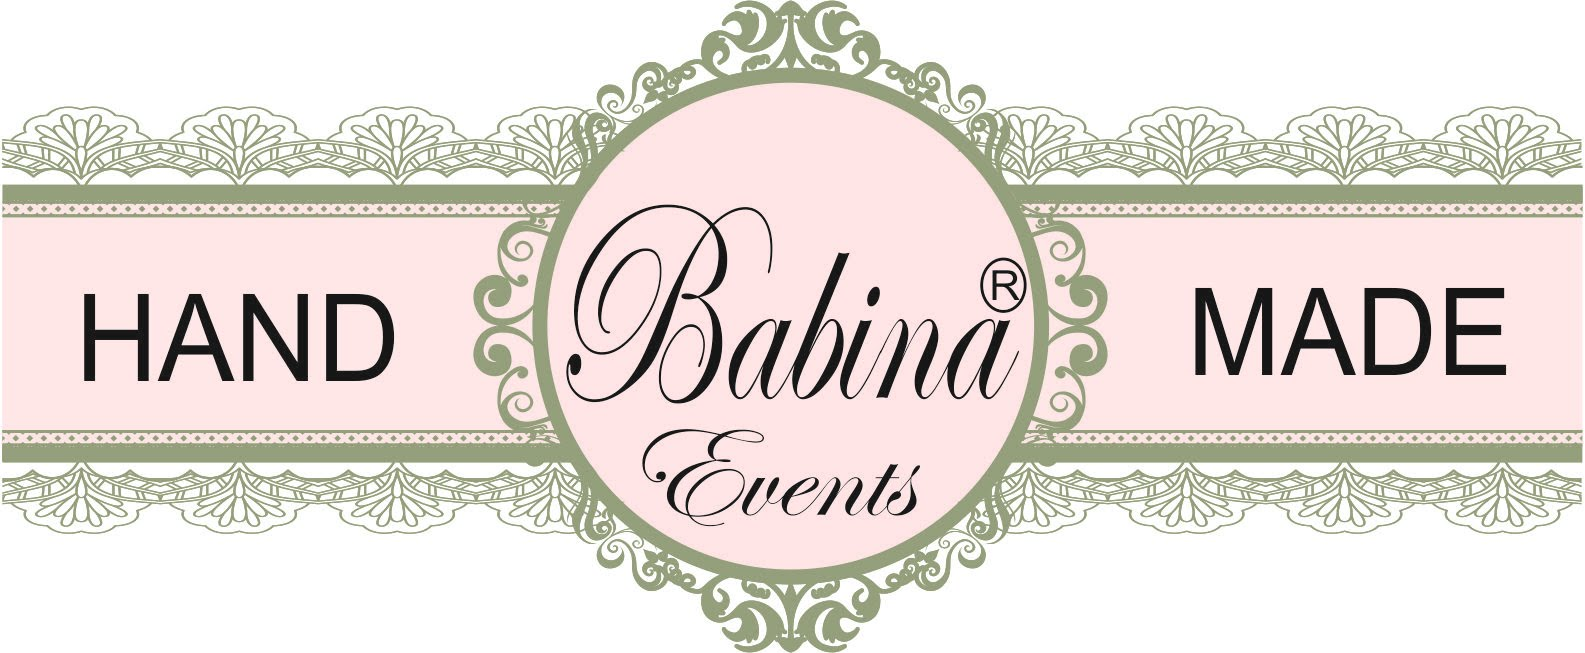 Babina Events